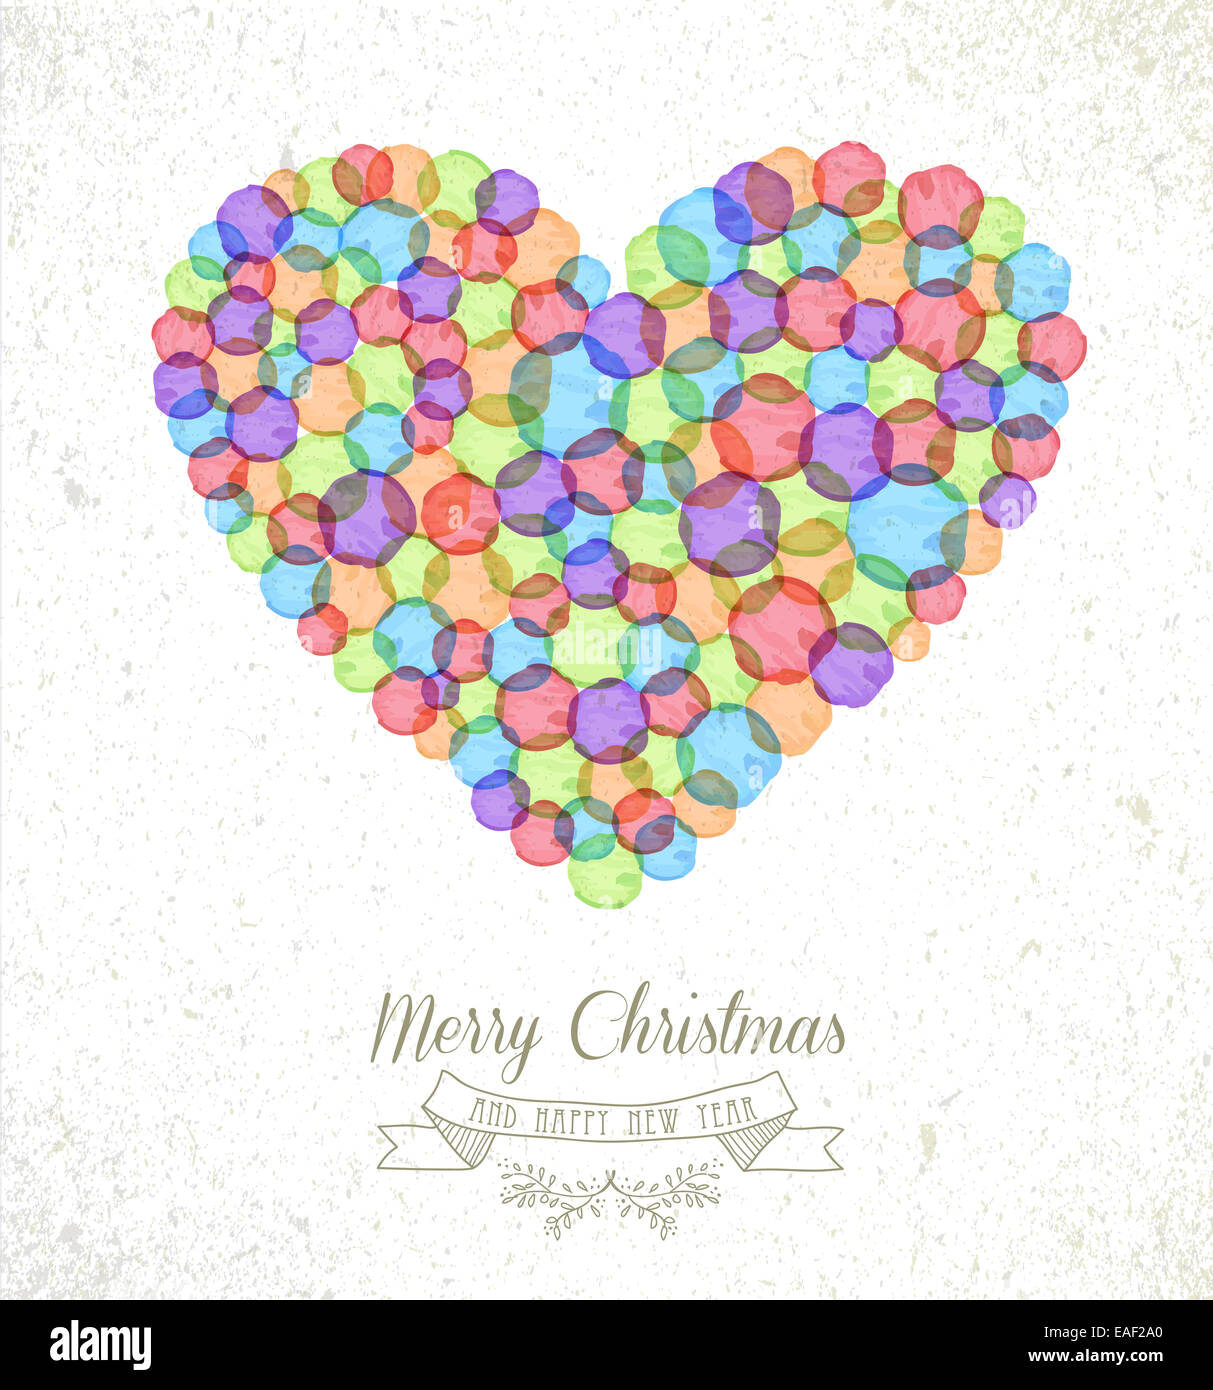 Merry Christmas Love Watercolor Vintage Stock Photos Merry